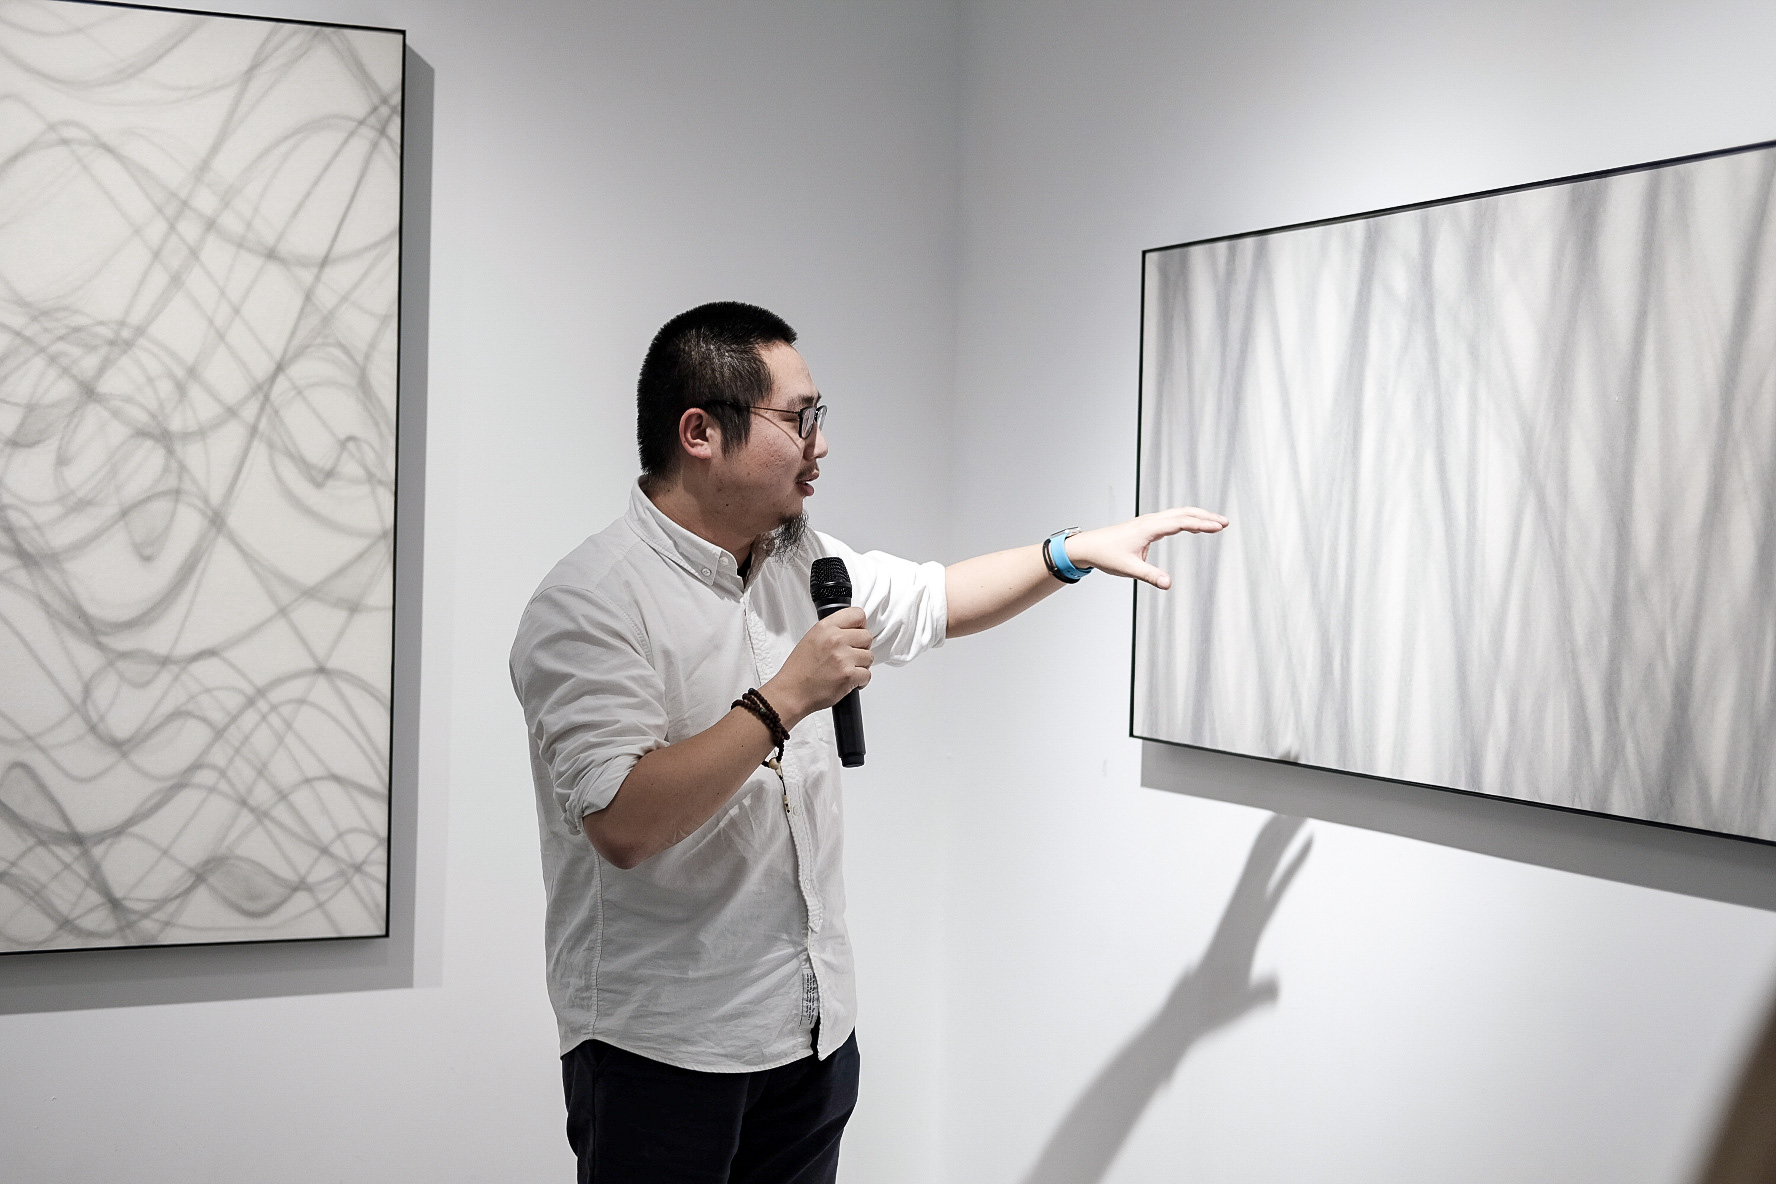 Independent Curator Yang Xi analyzing the works of Wang Chao